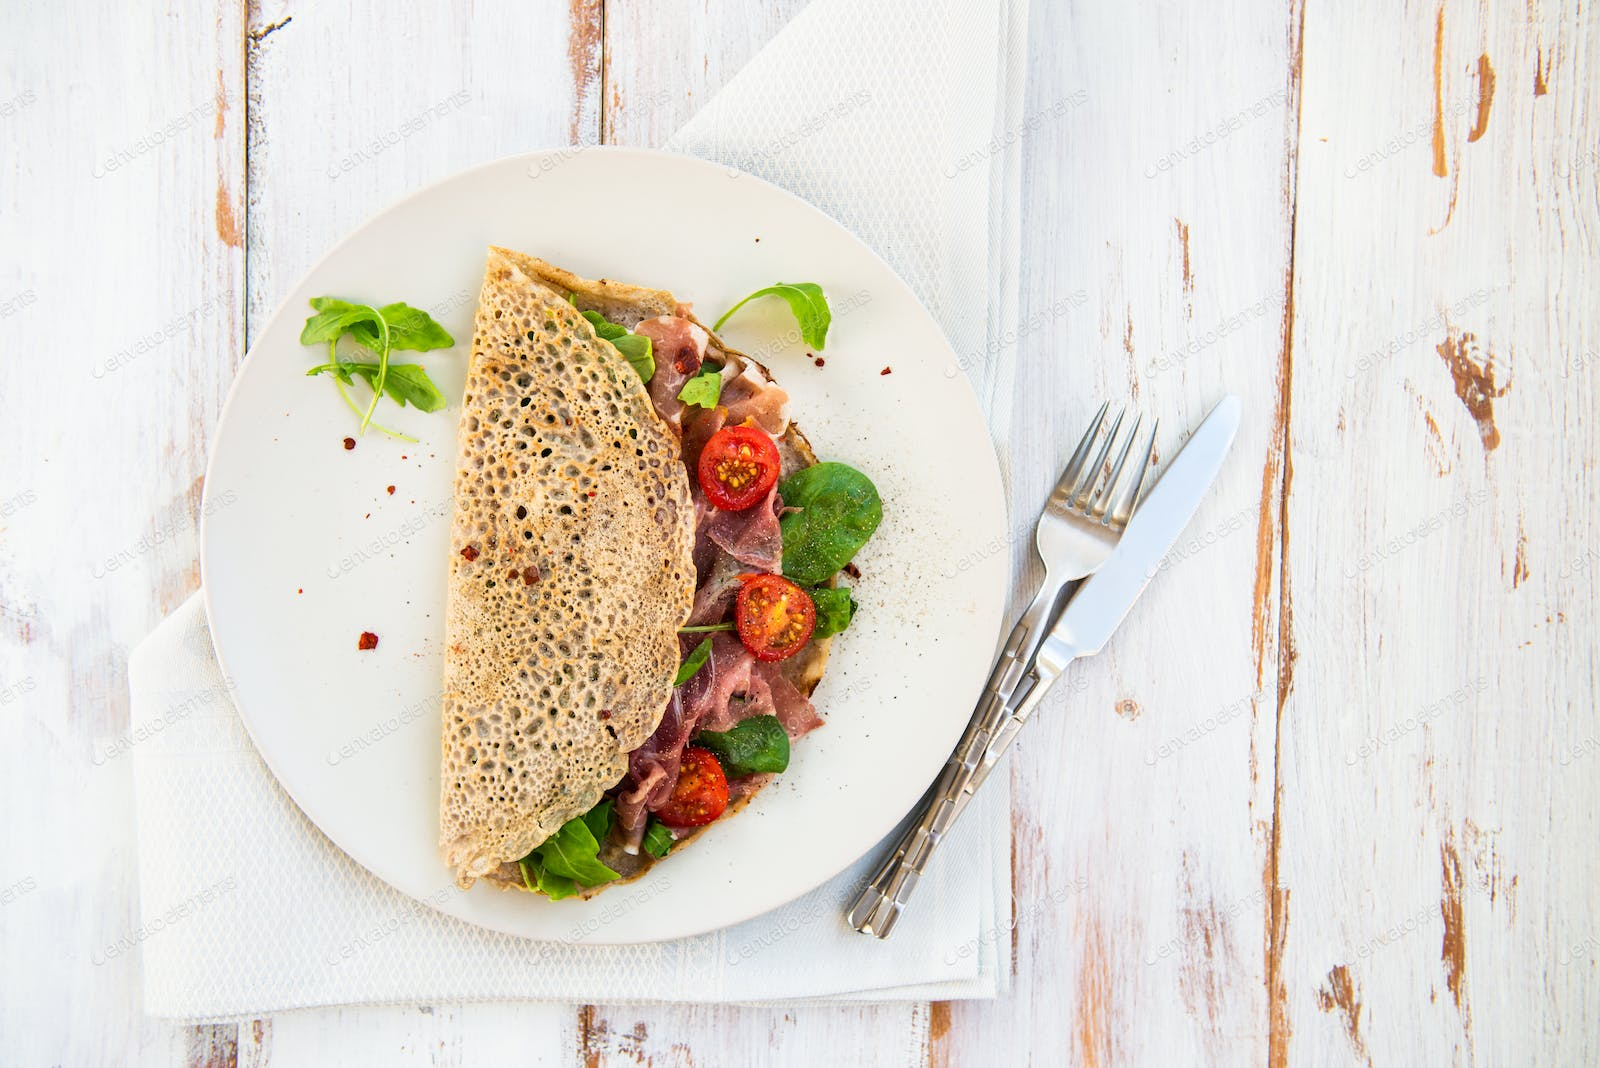 Buckwheat Pancakes With Cherry Tomatoes Rocket Salad Spinach Parma Ham Photo By Manuta On Envato Elements